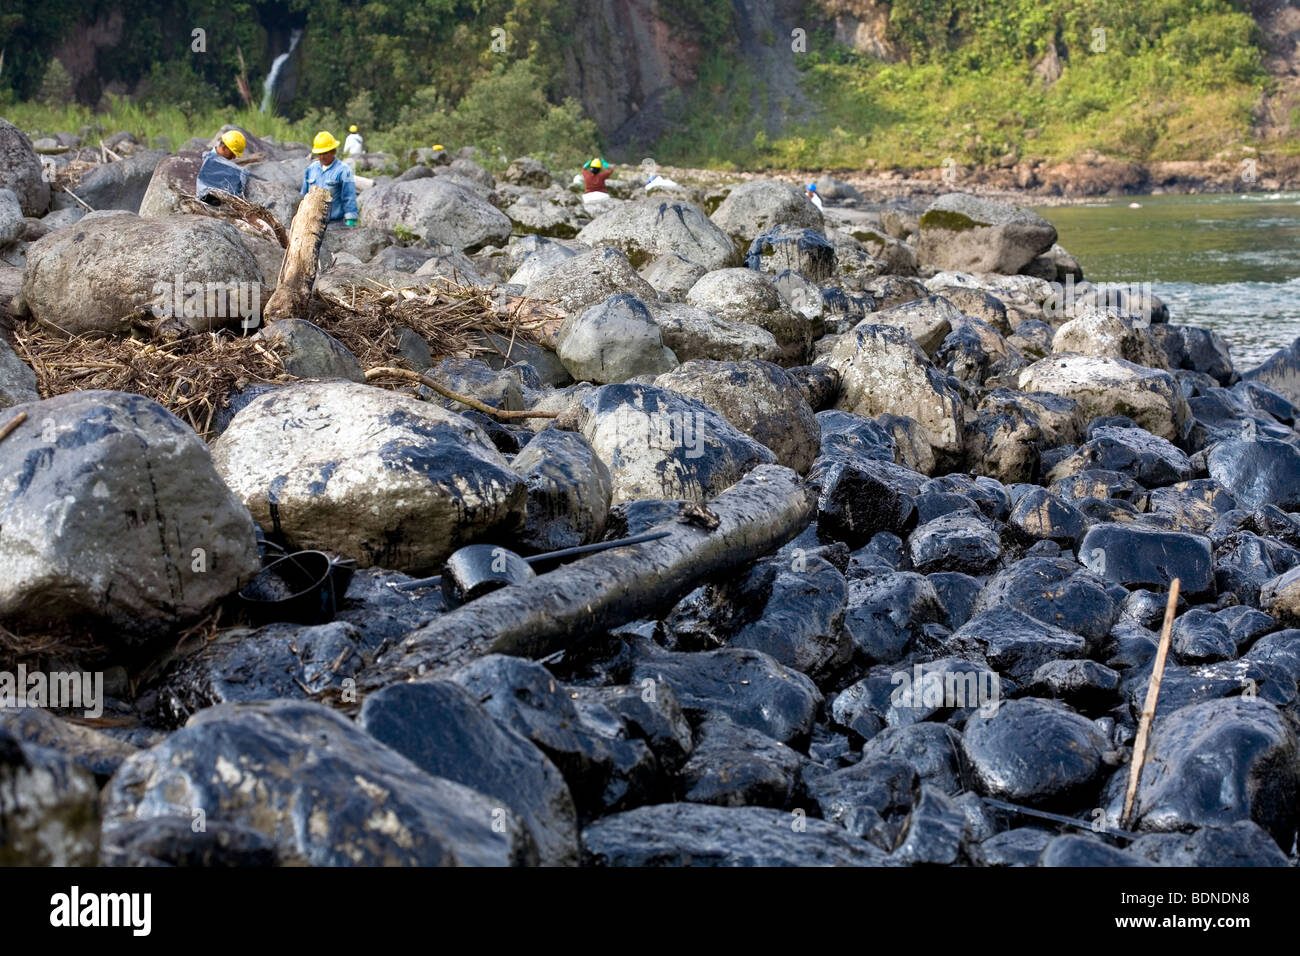 Oiled rocks at the edge of an Amazonian river after an oil spill - Stock Image